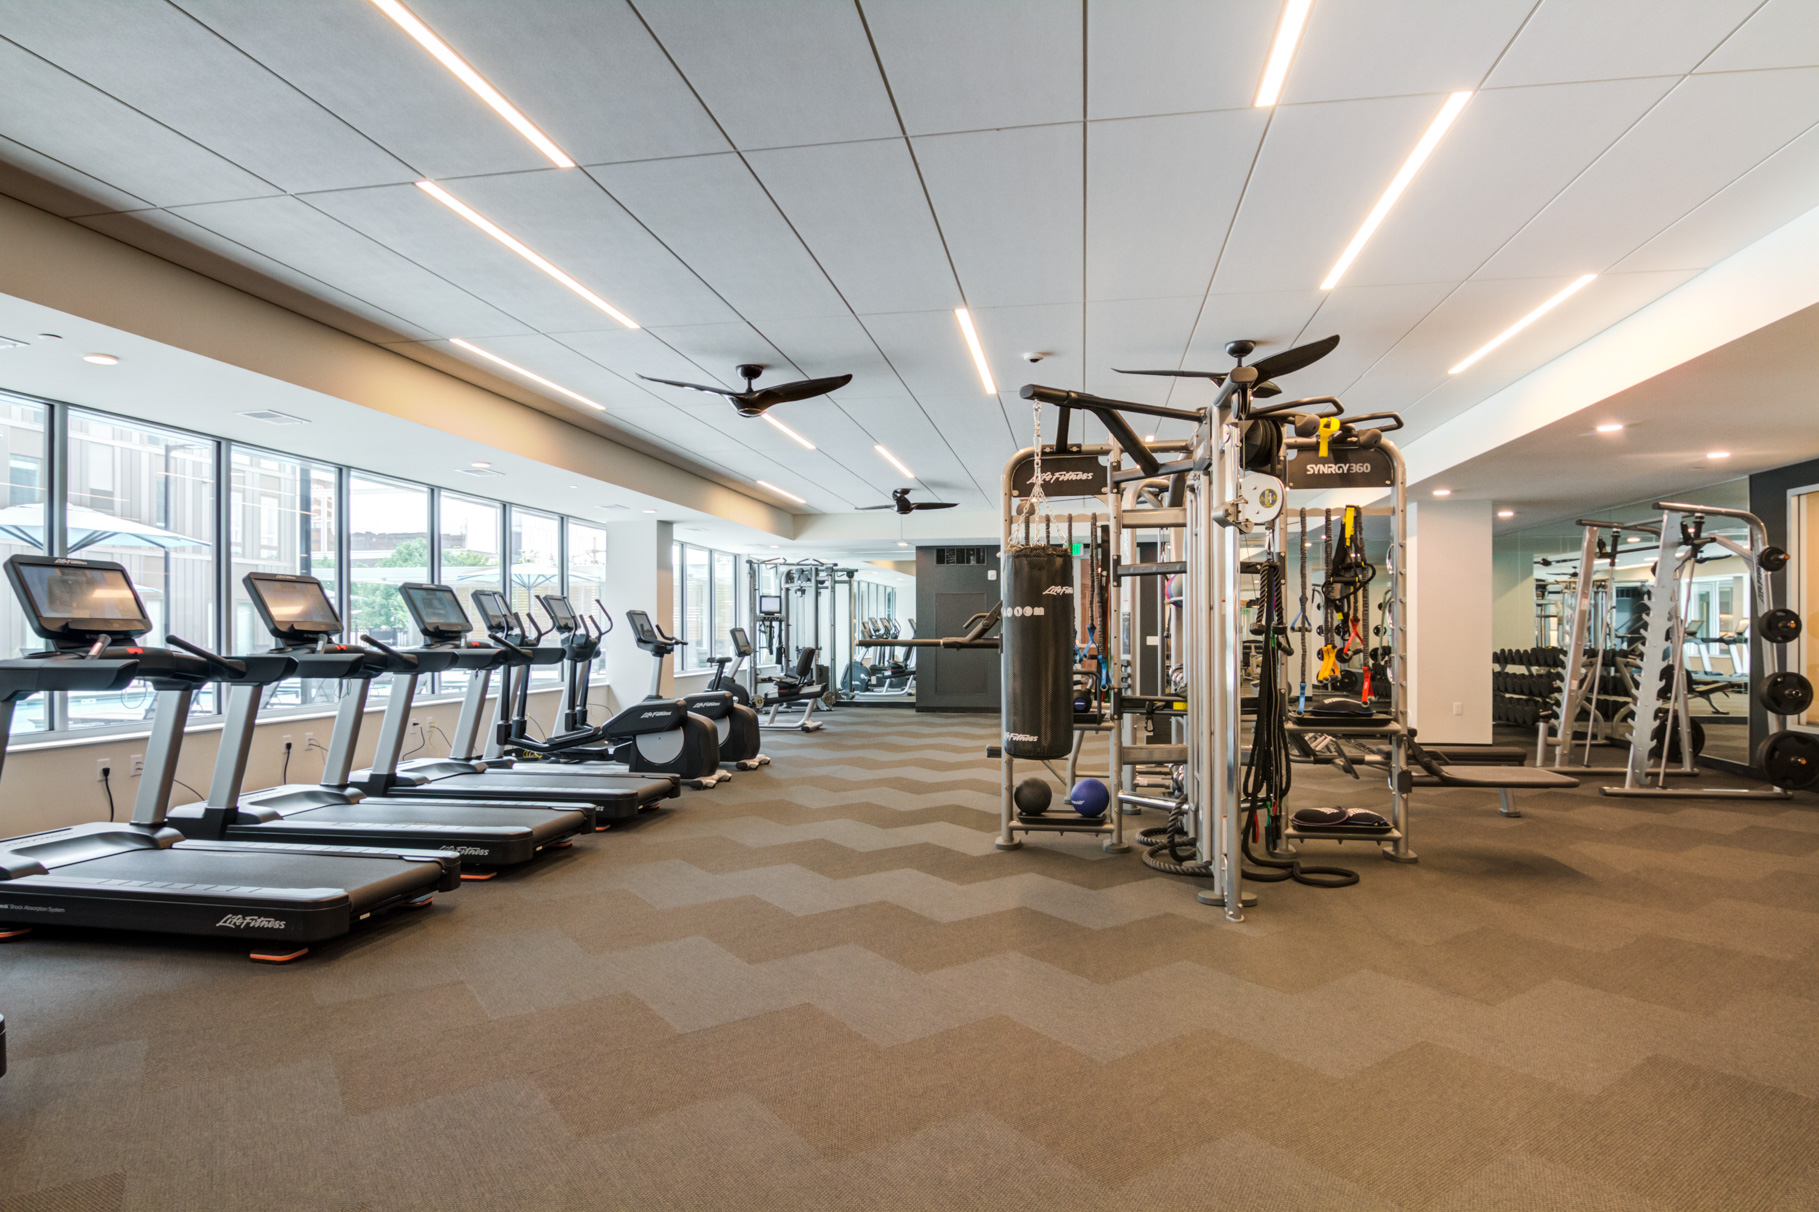 Get fit with cardio gym, Wellbeats, and Yoga On-Demand